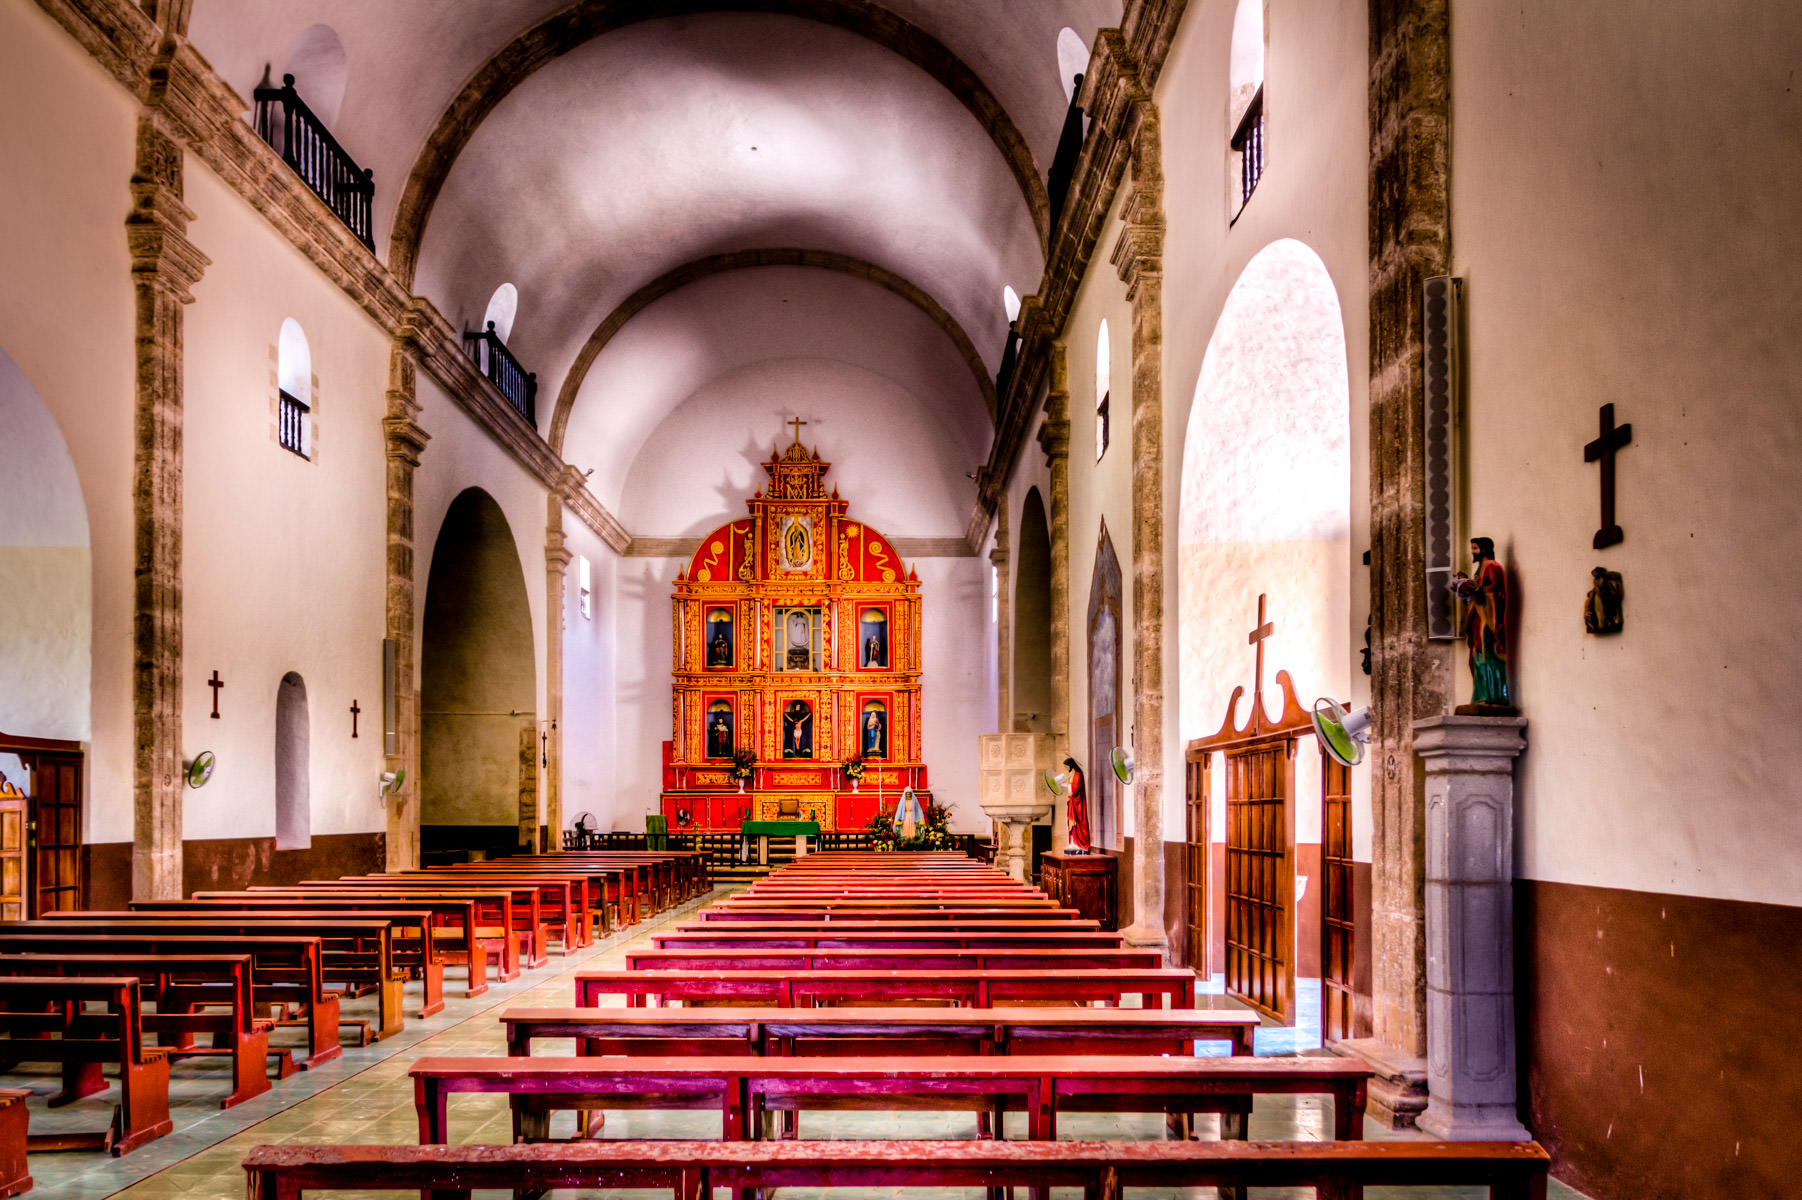 The simple interior of the Catholic church in Dzemul, Yucatan, Mexico.